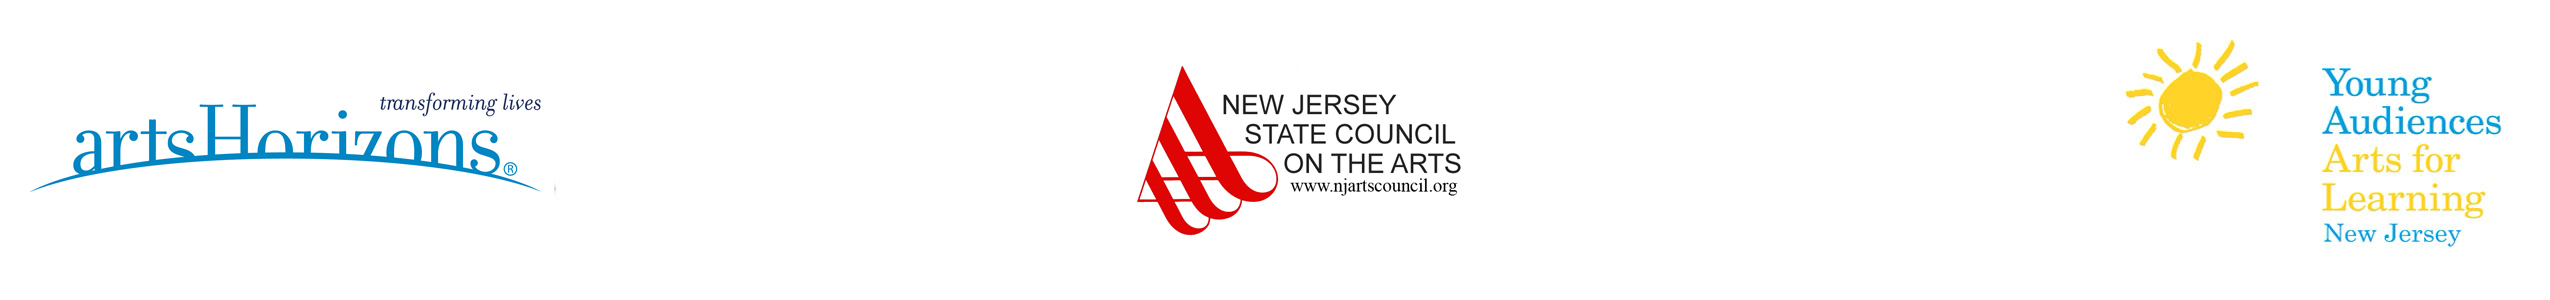 Artist-in-Education Grants for NJ Schools and Artists Now Available